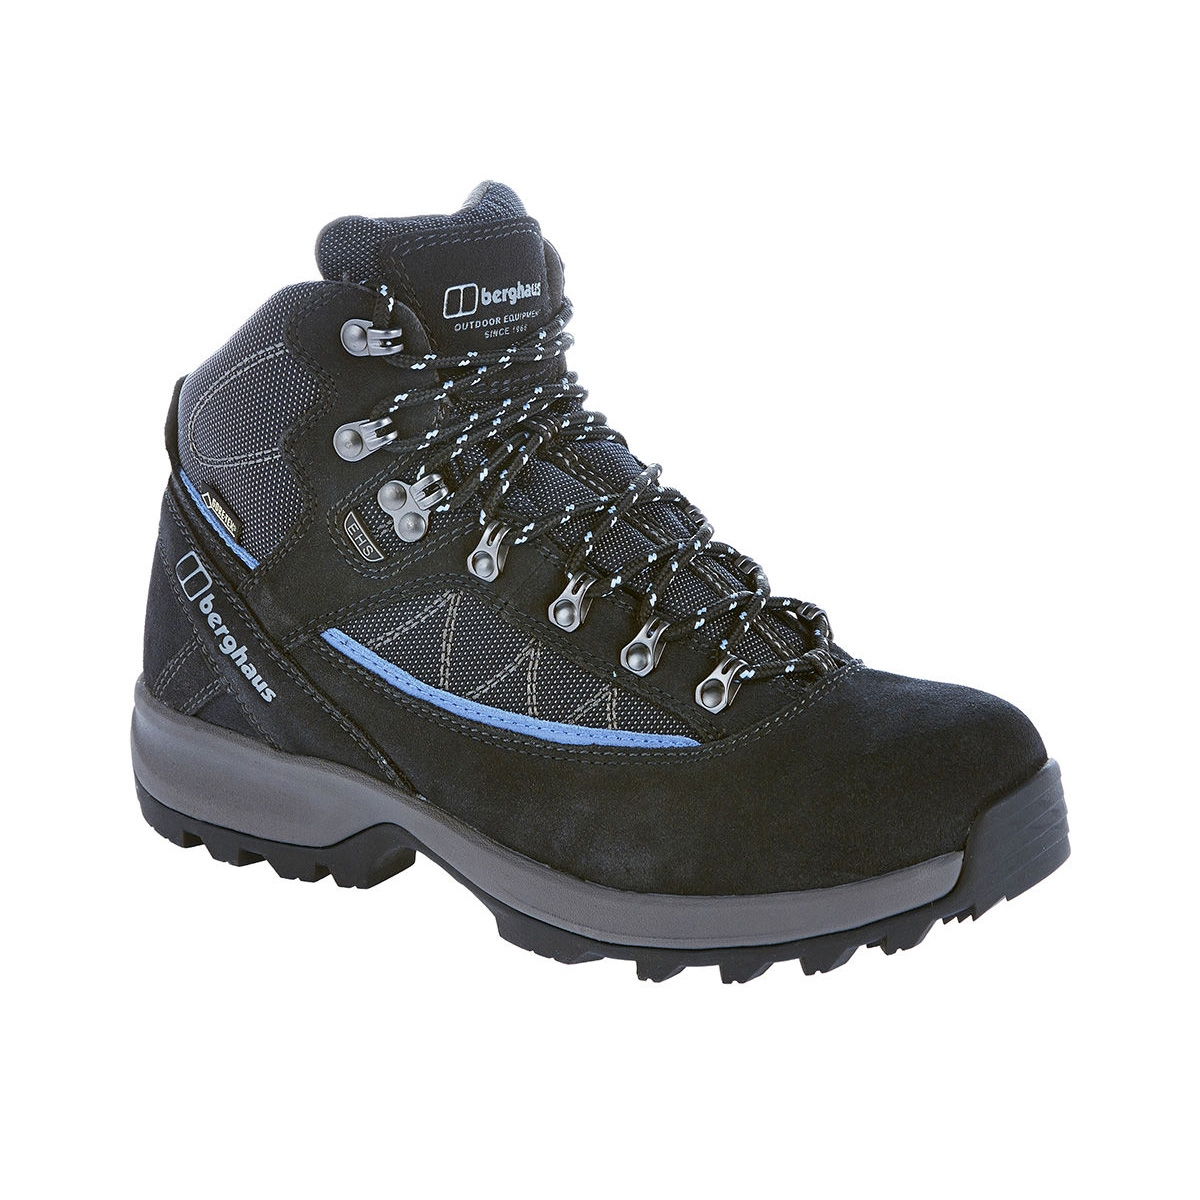 berghaus explorer trek plus gtx walking boots s